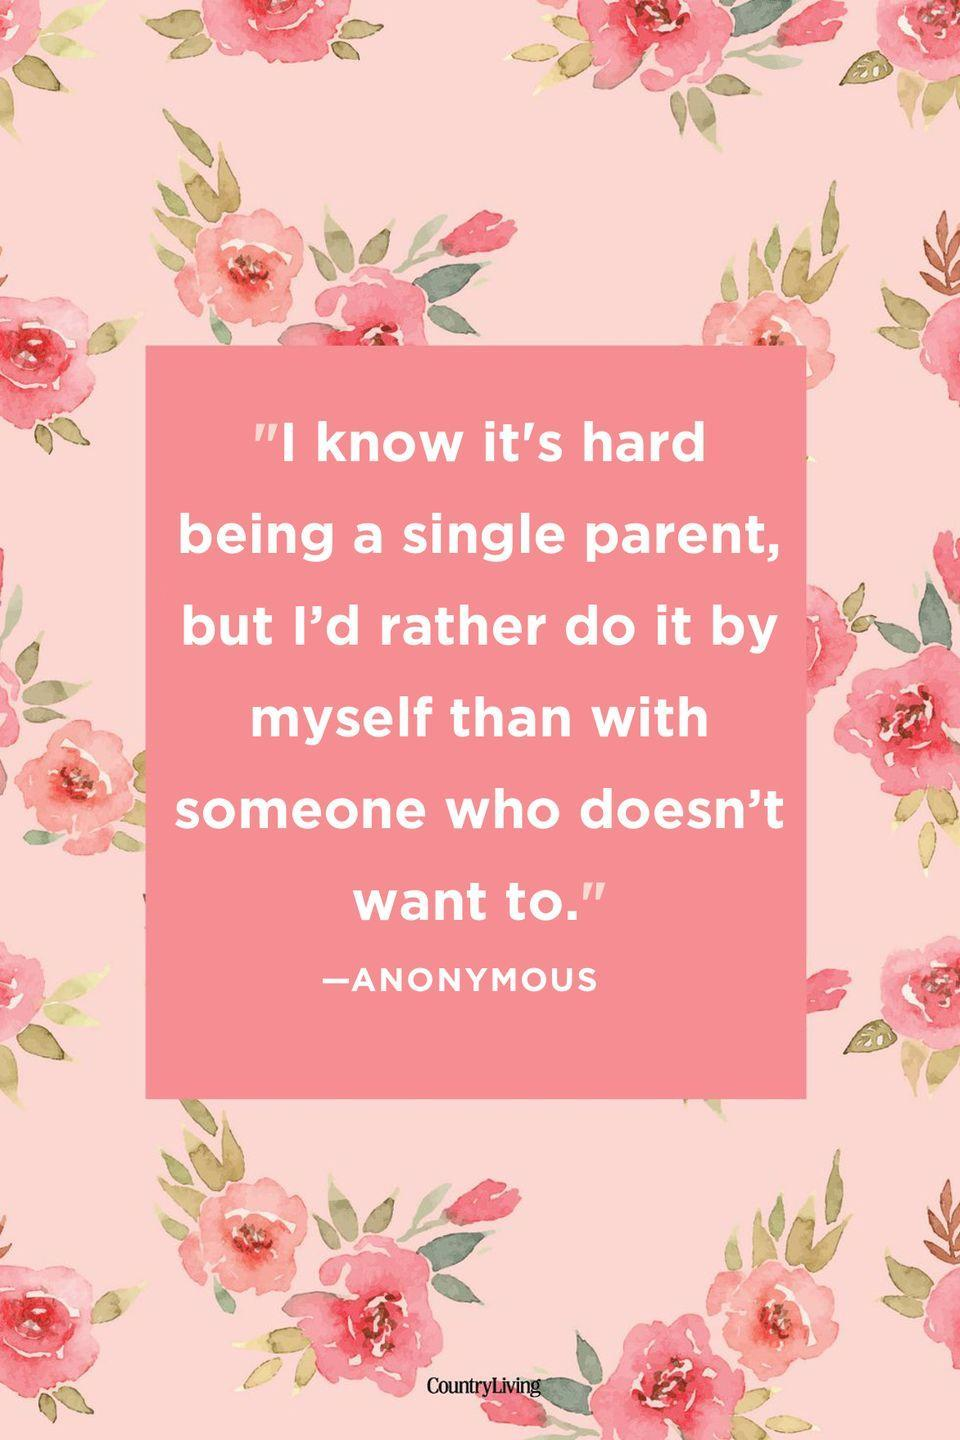 "<p>""I know it's hard being a single parent, but I'd rather do it by myself than with someone who doesn't want to.""</p>"